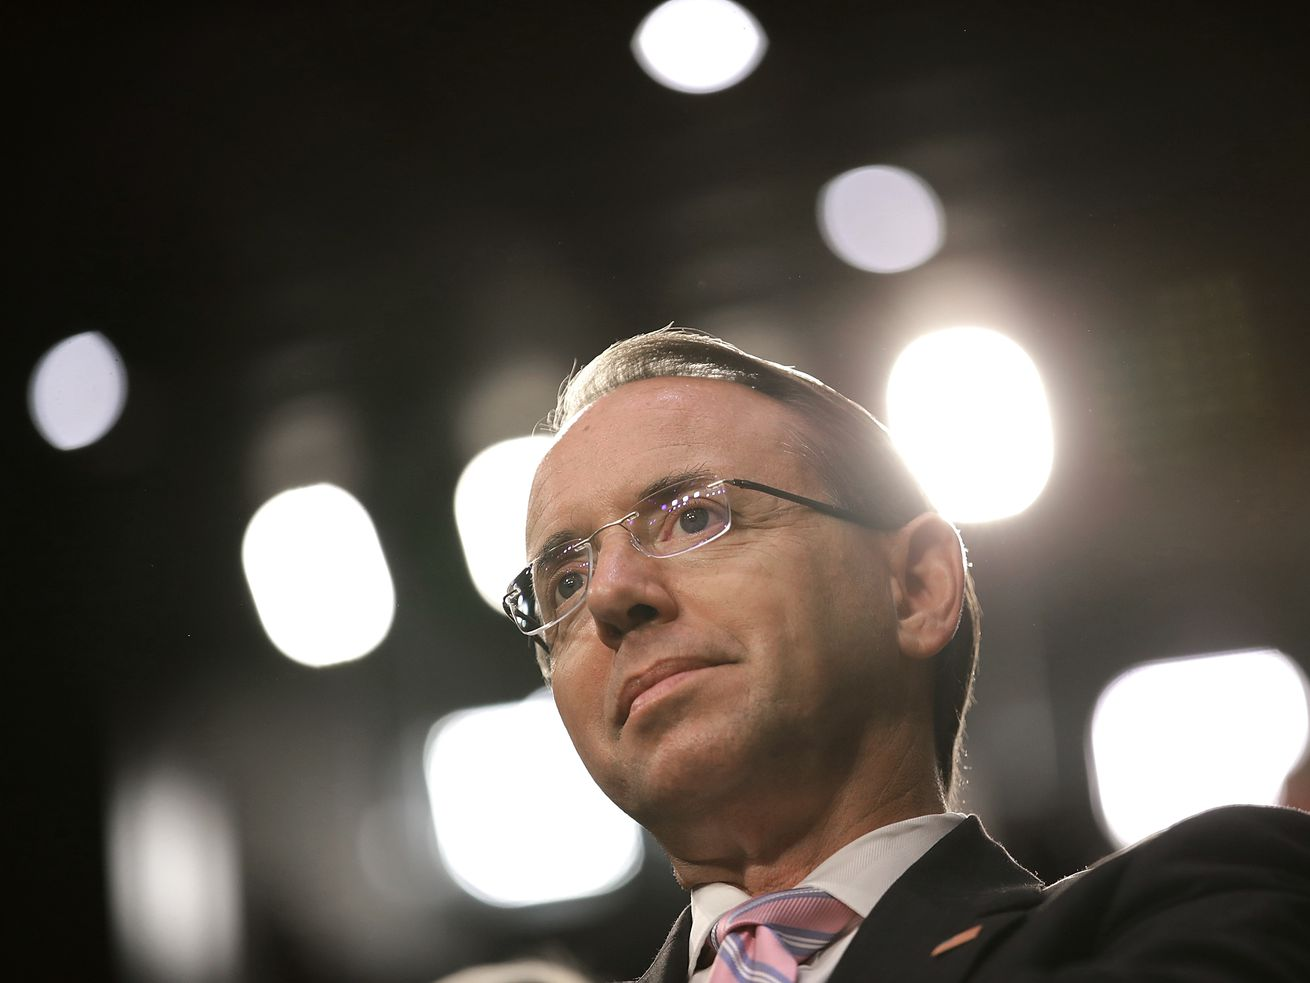 Deputy Attorney General Rod Rosenstein's ouster may be imminent after a September 21, 2018 New York Times report.